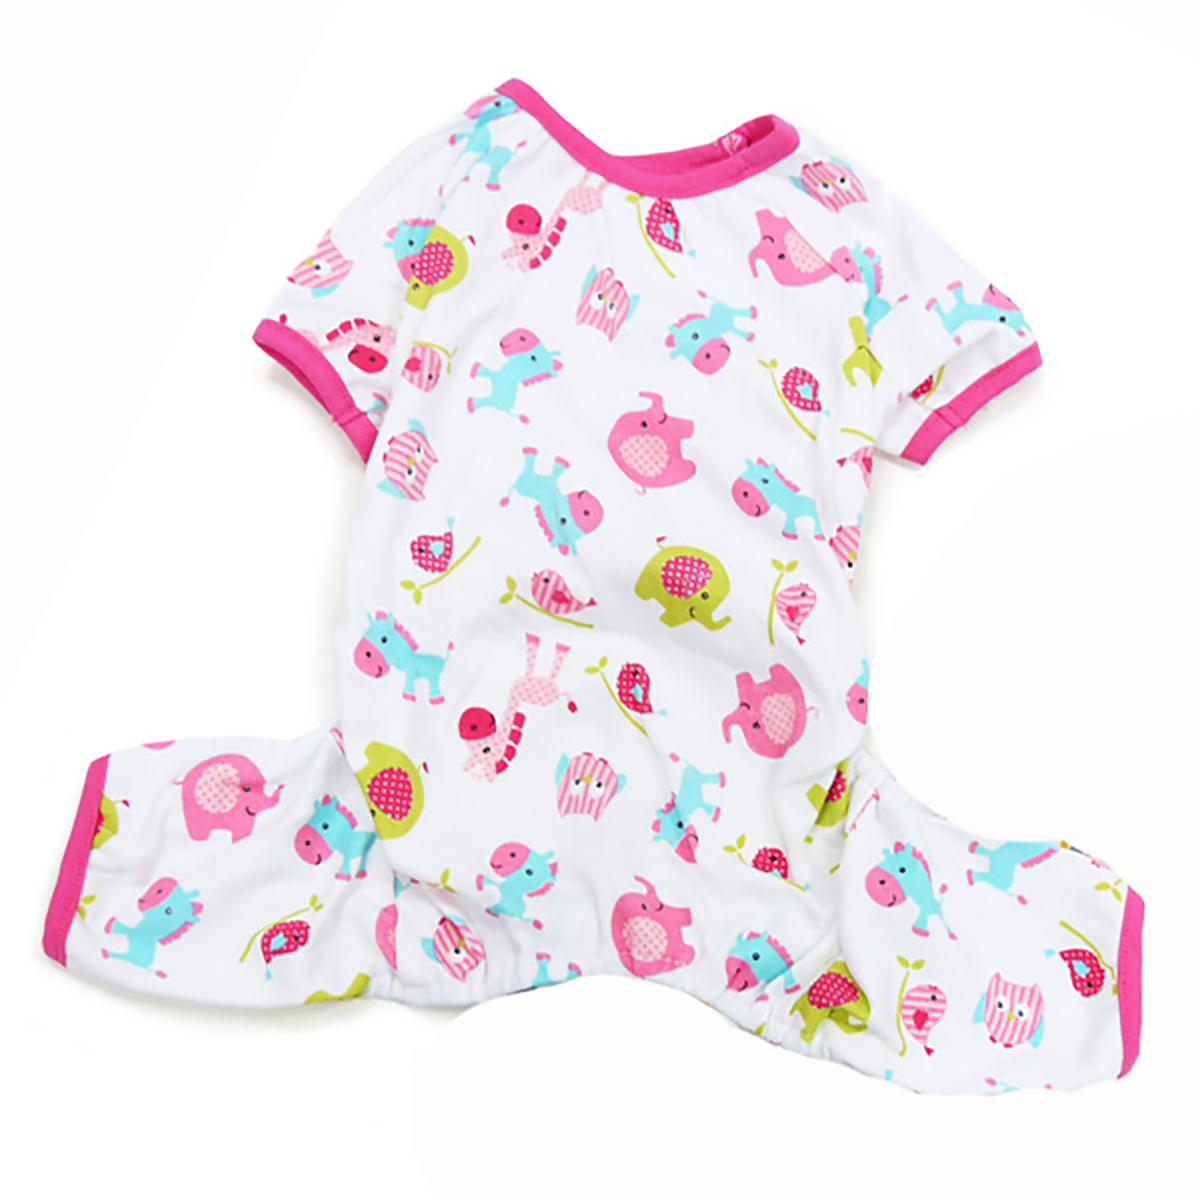 Dogo Zoo Dog Pajamas - Pink